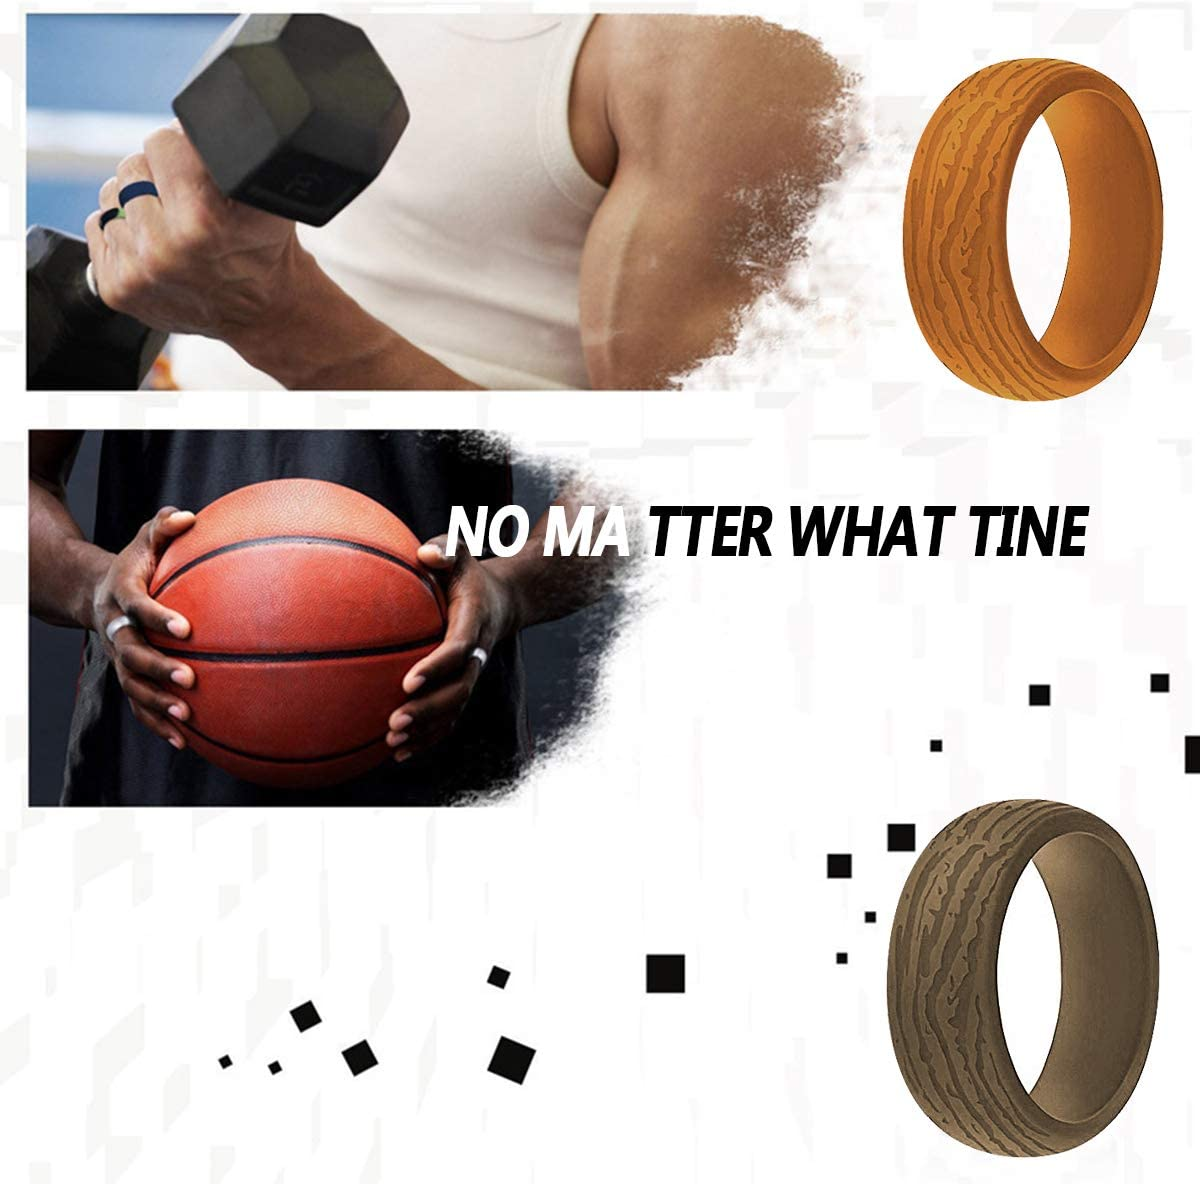 LISNOZA Silicone Wedding Ring Band for Men Silicone Rubber Wedding Bands Stackable Multiple Colors Comfortable Affordable Fashion Bark Texture Design Fit Skin Safe